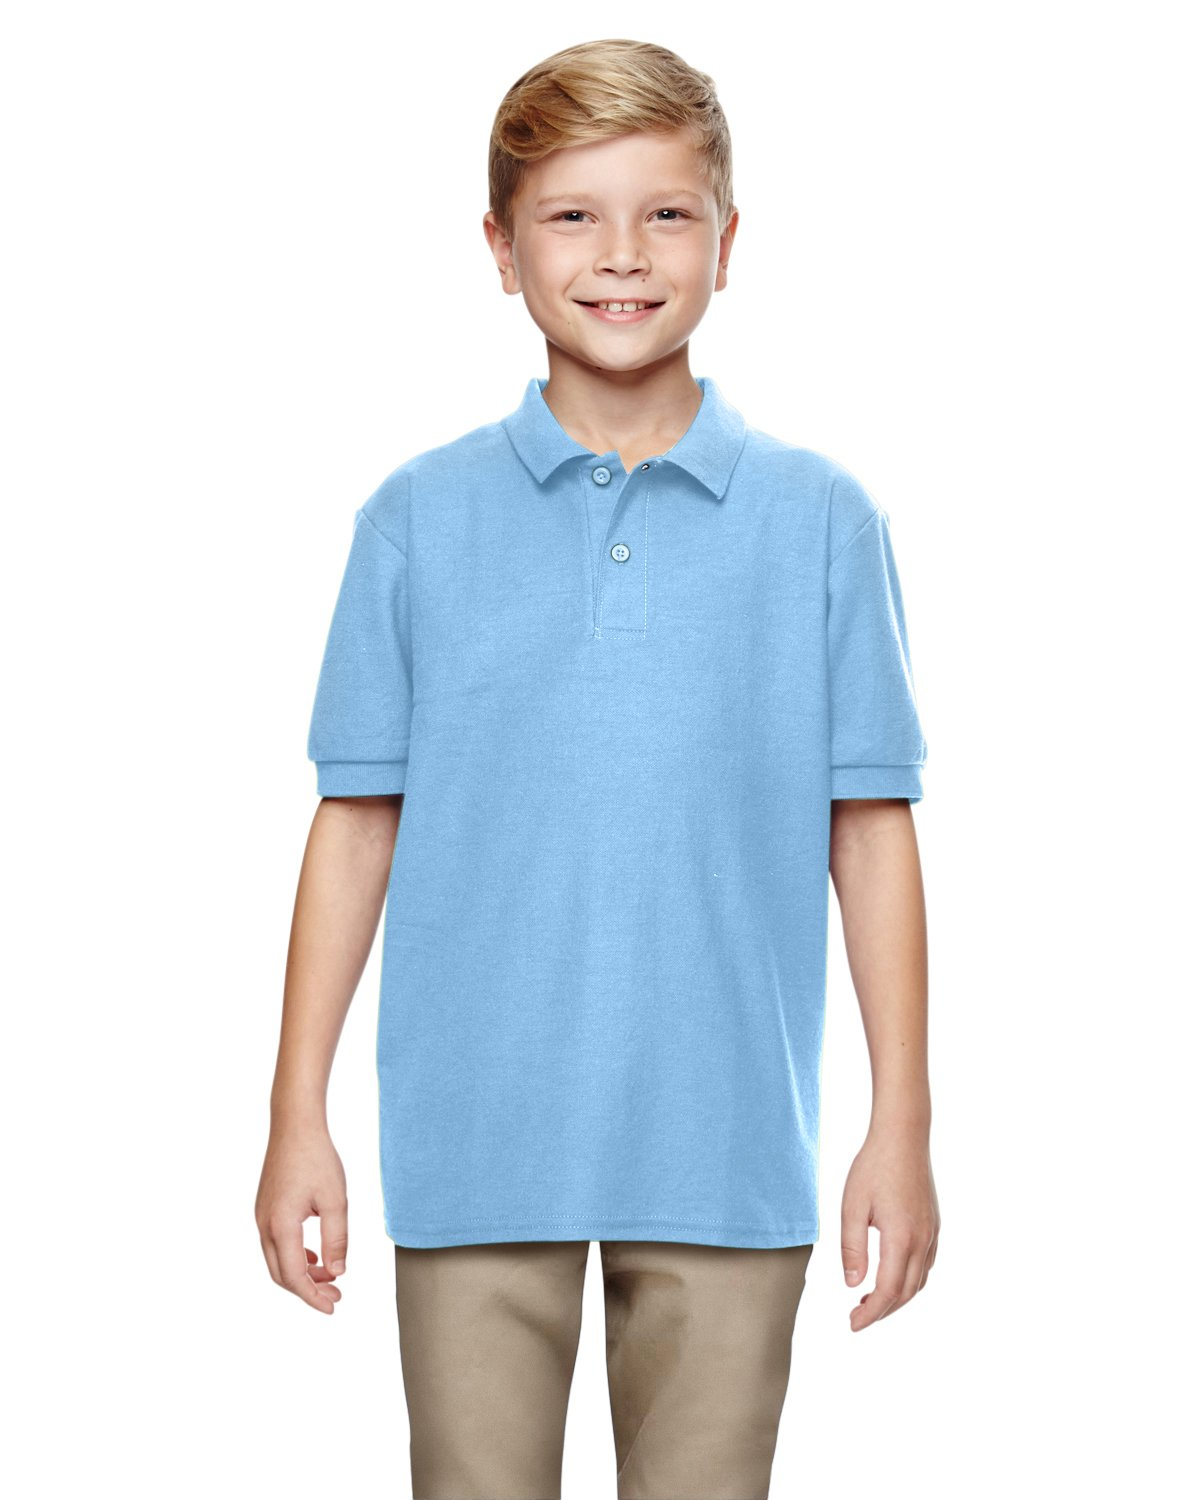 Gildan - DryBlend Youth Double Pique Sport Shirt - 72800B